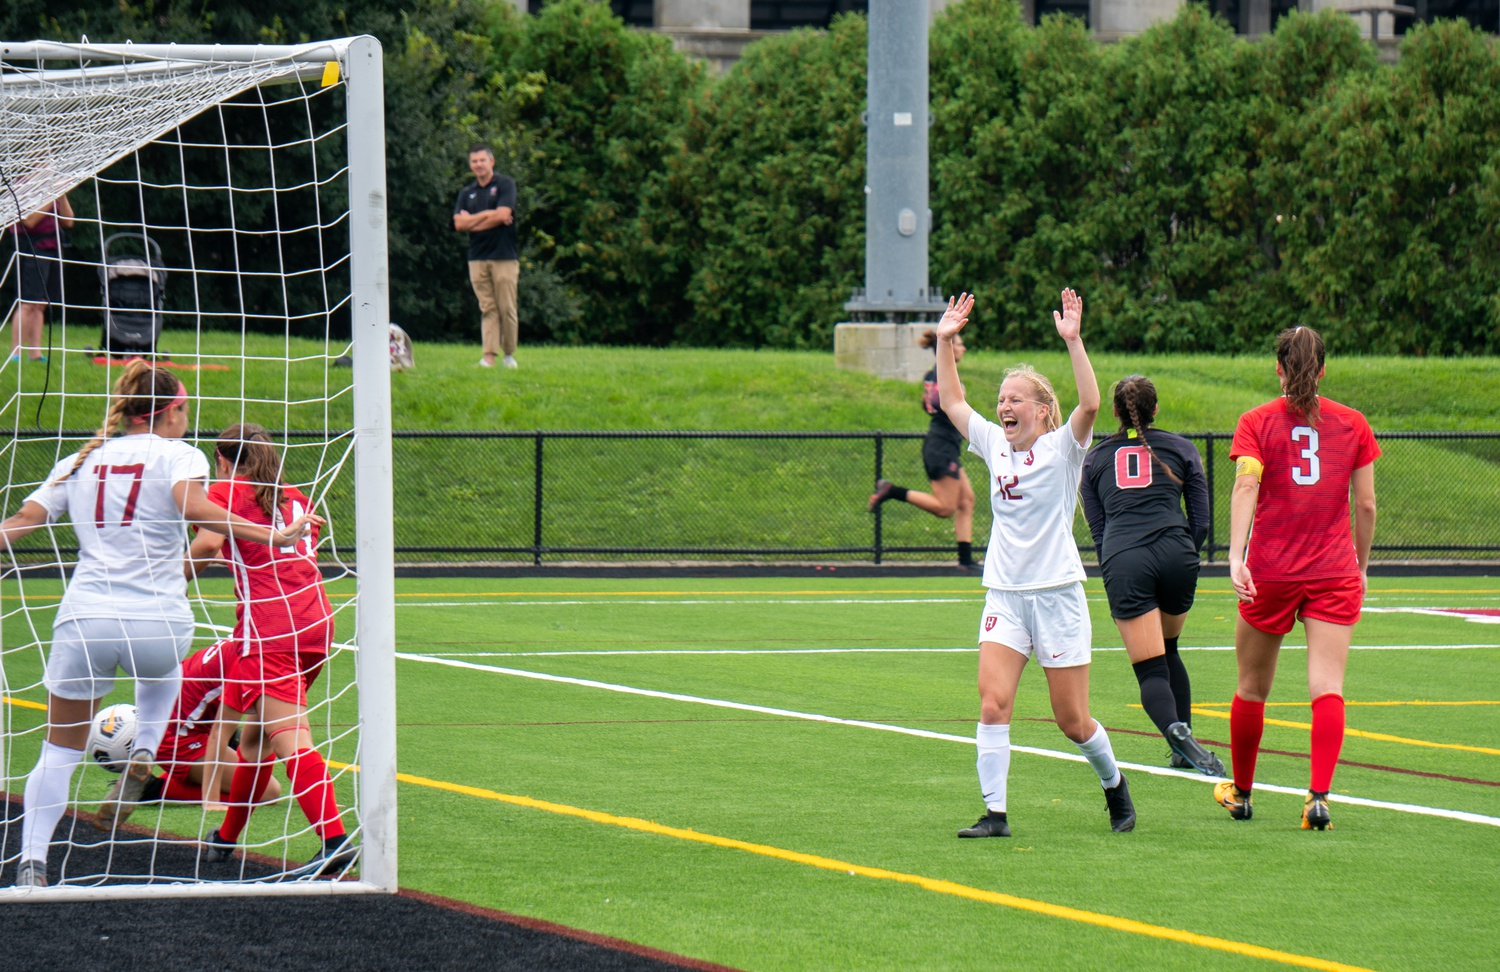 Sophomore defender Taylor Fasnacht scores on the way to a 3-2 Crimson victory against St. John's on Sept. 5. Since the victory against the Red Storm, Harvard has drawn once and won once to maintain an undefeated record.